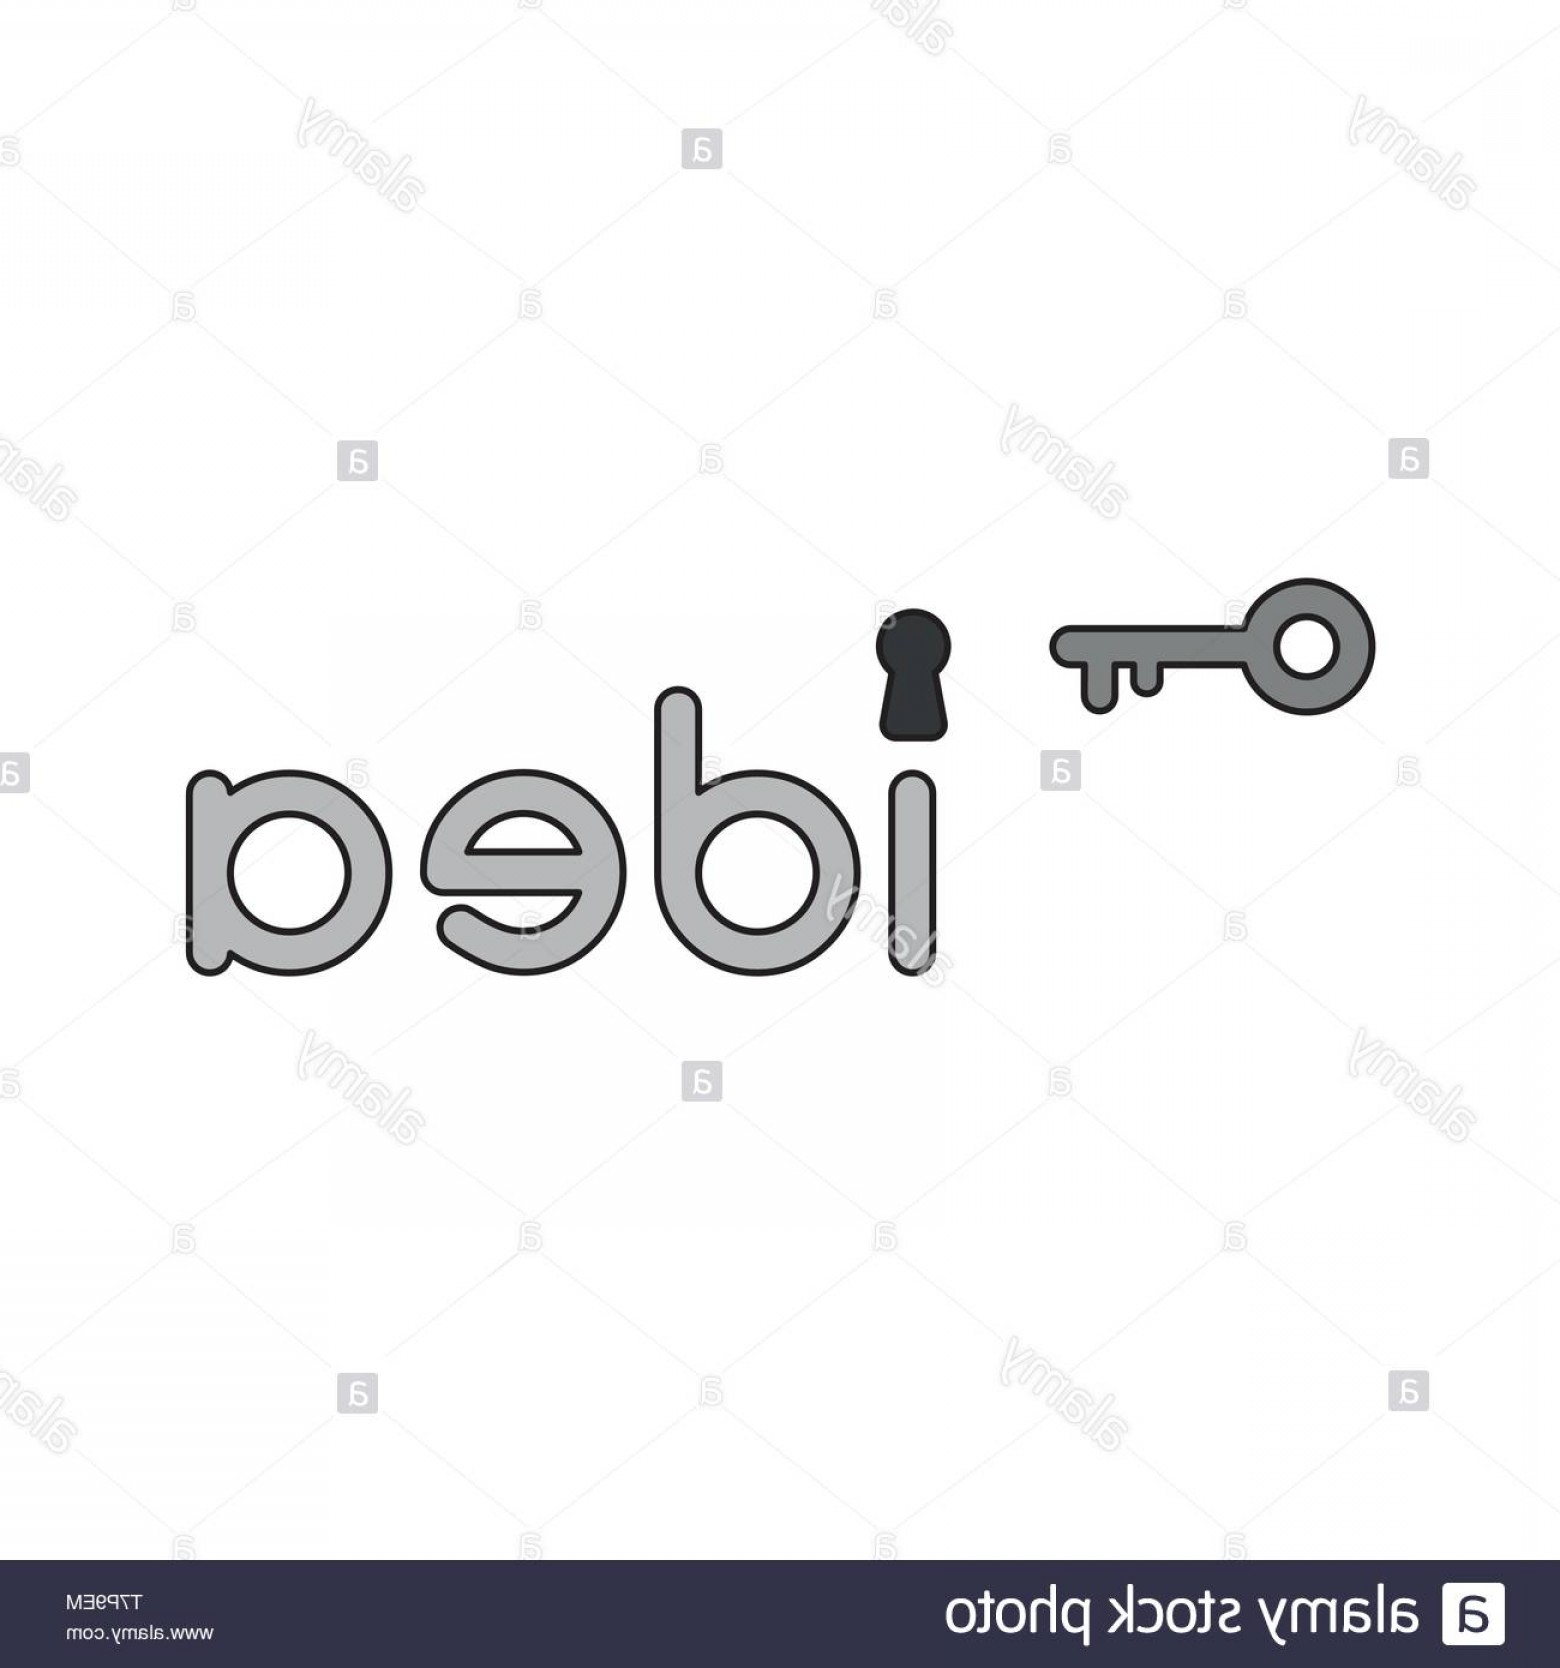 Keyholes And Key Vector Art: Vector Icon Concept Of Grey Idea Word With Keyhole And Key Image